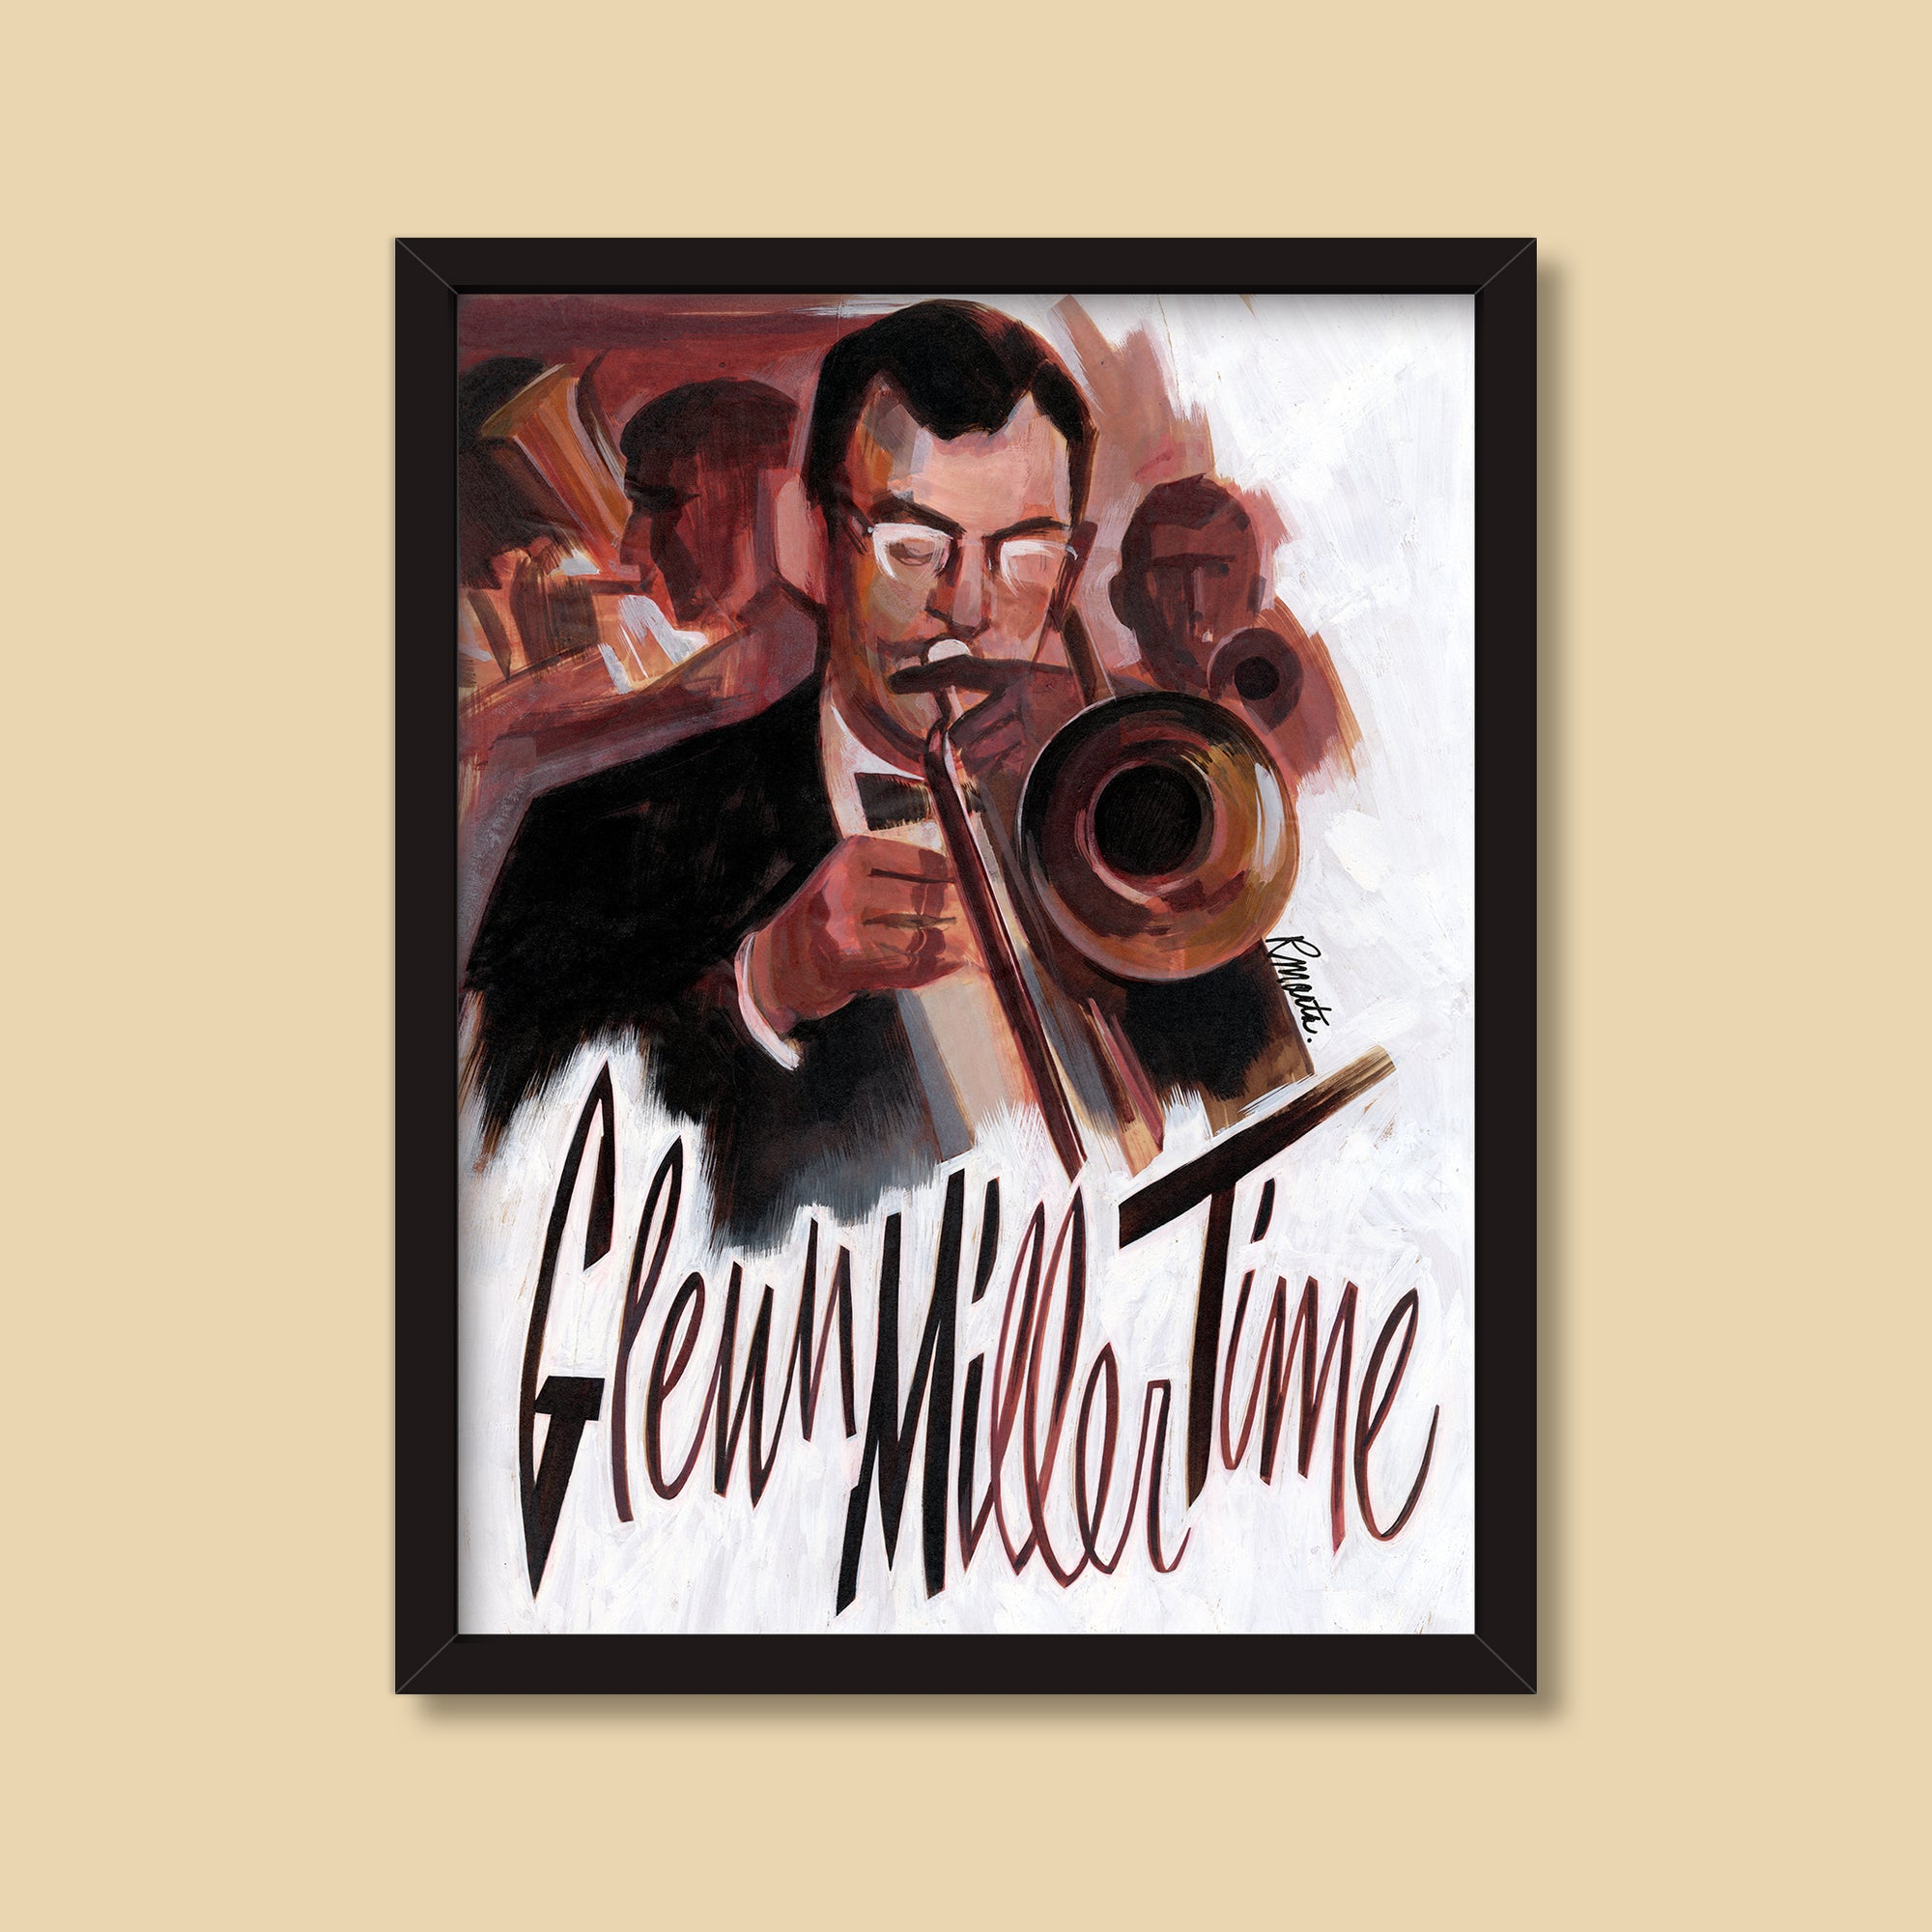 Glenn Miller Time — vintage illustration by Ray Marta